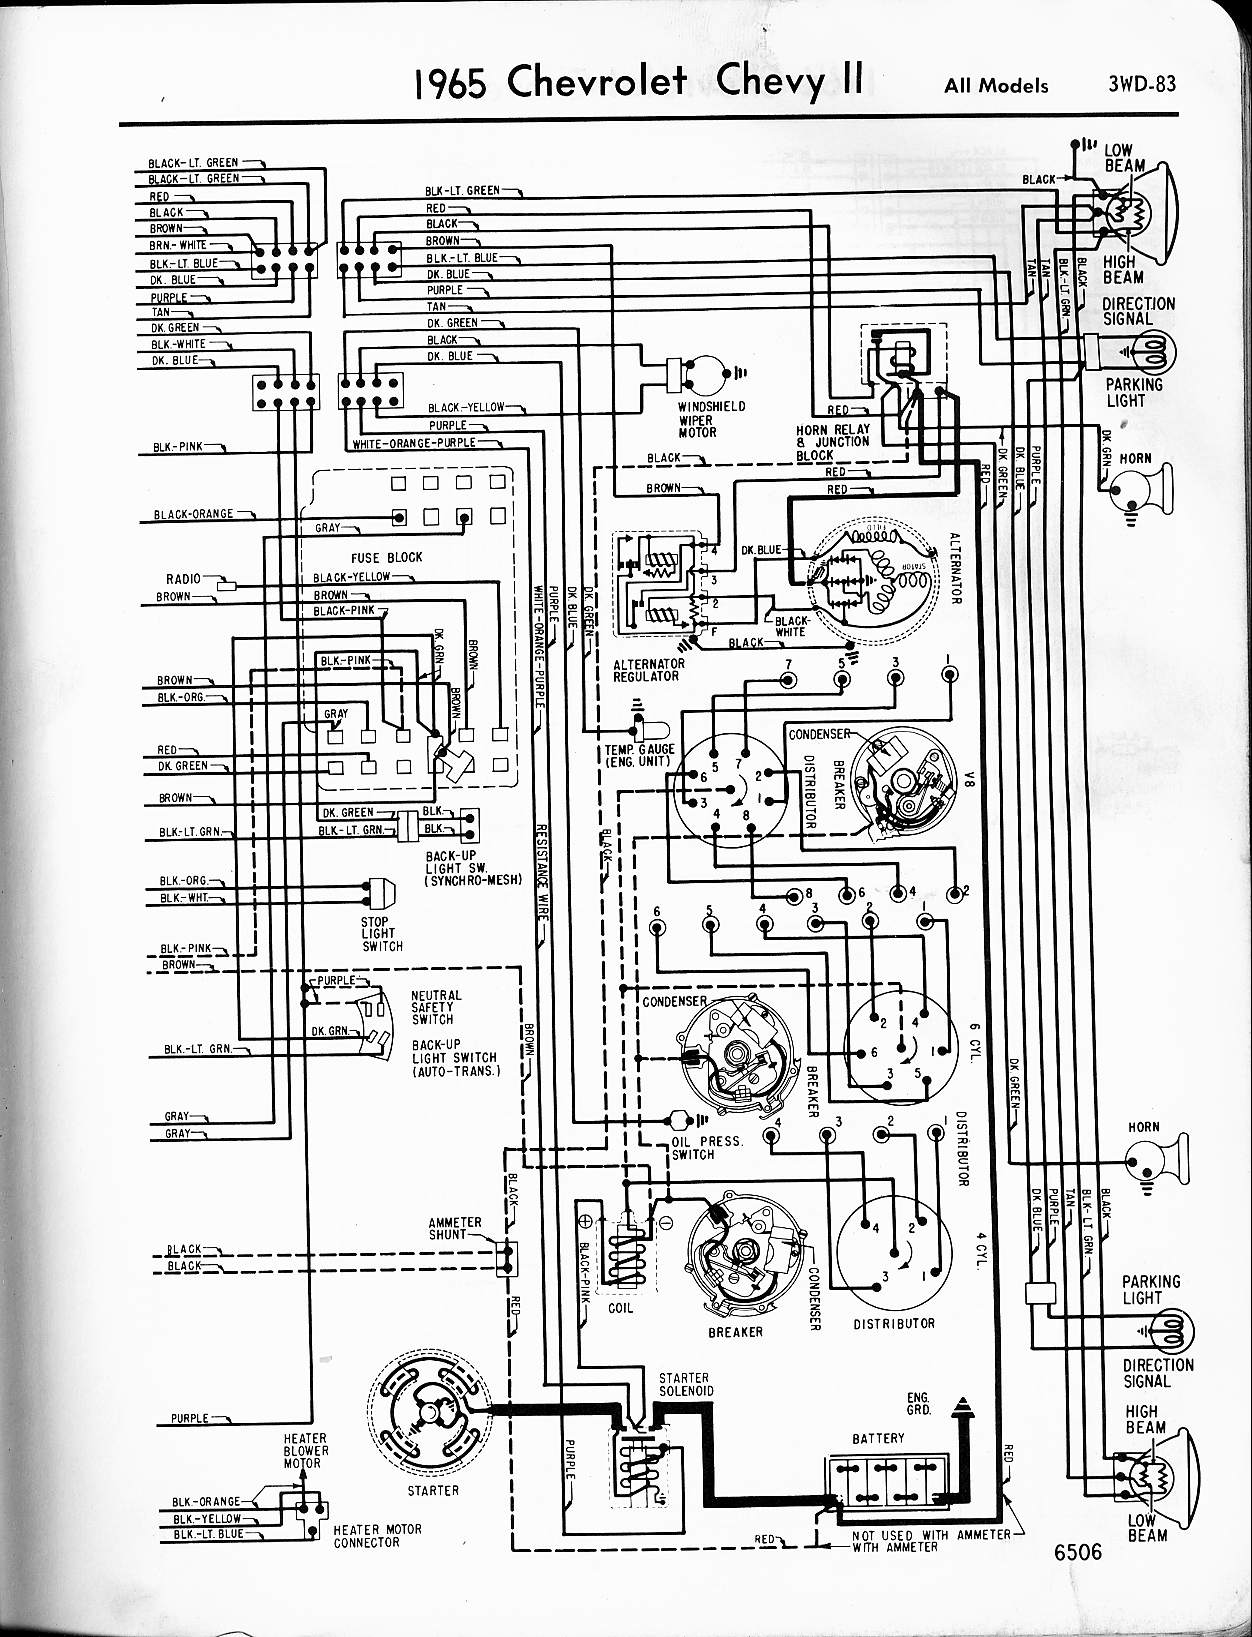 MWireChev65_3WD 083 chevy diagrams 1969 mustang alternator wiring diagram at gsmportal.co